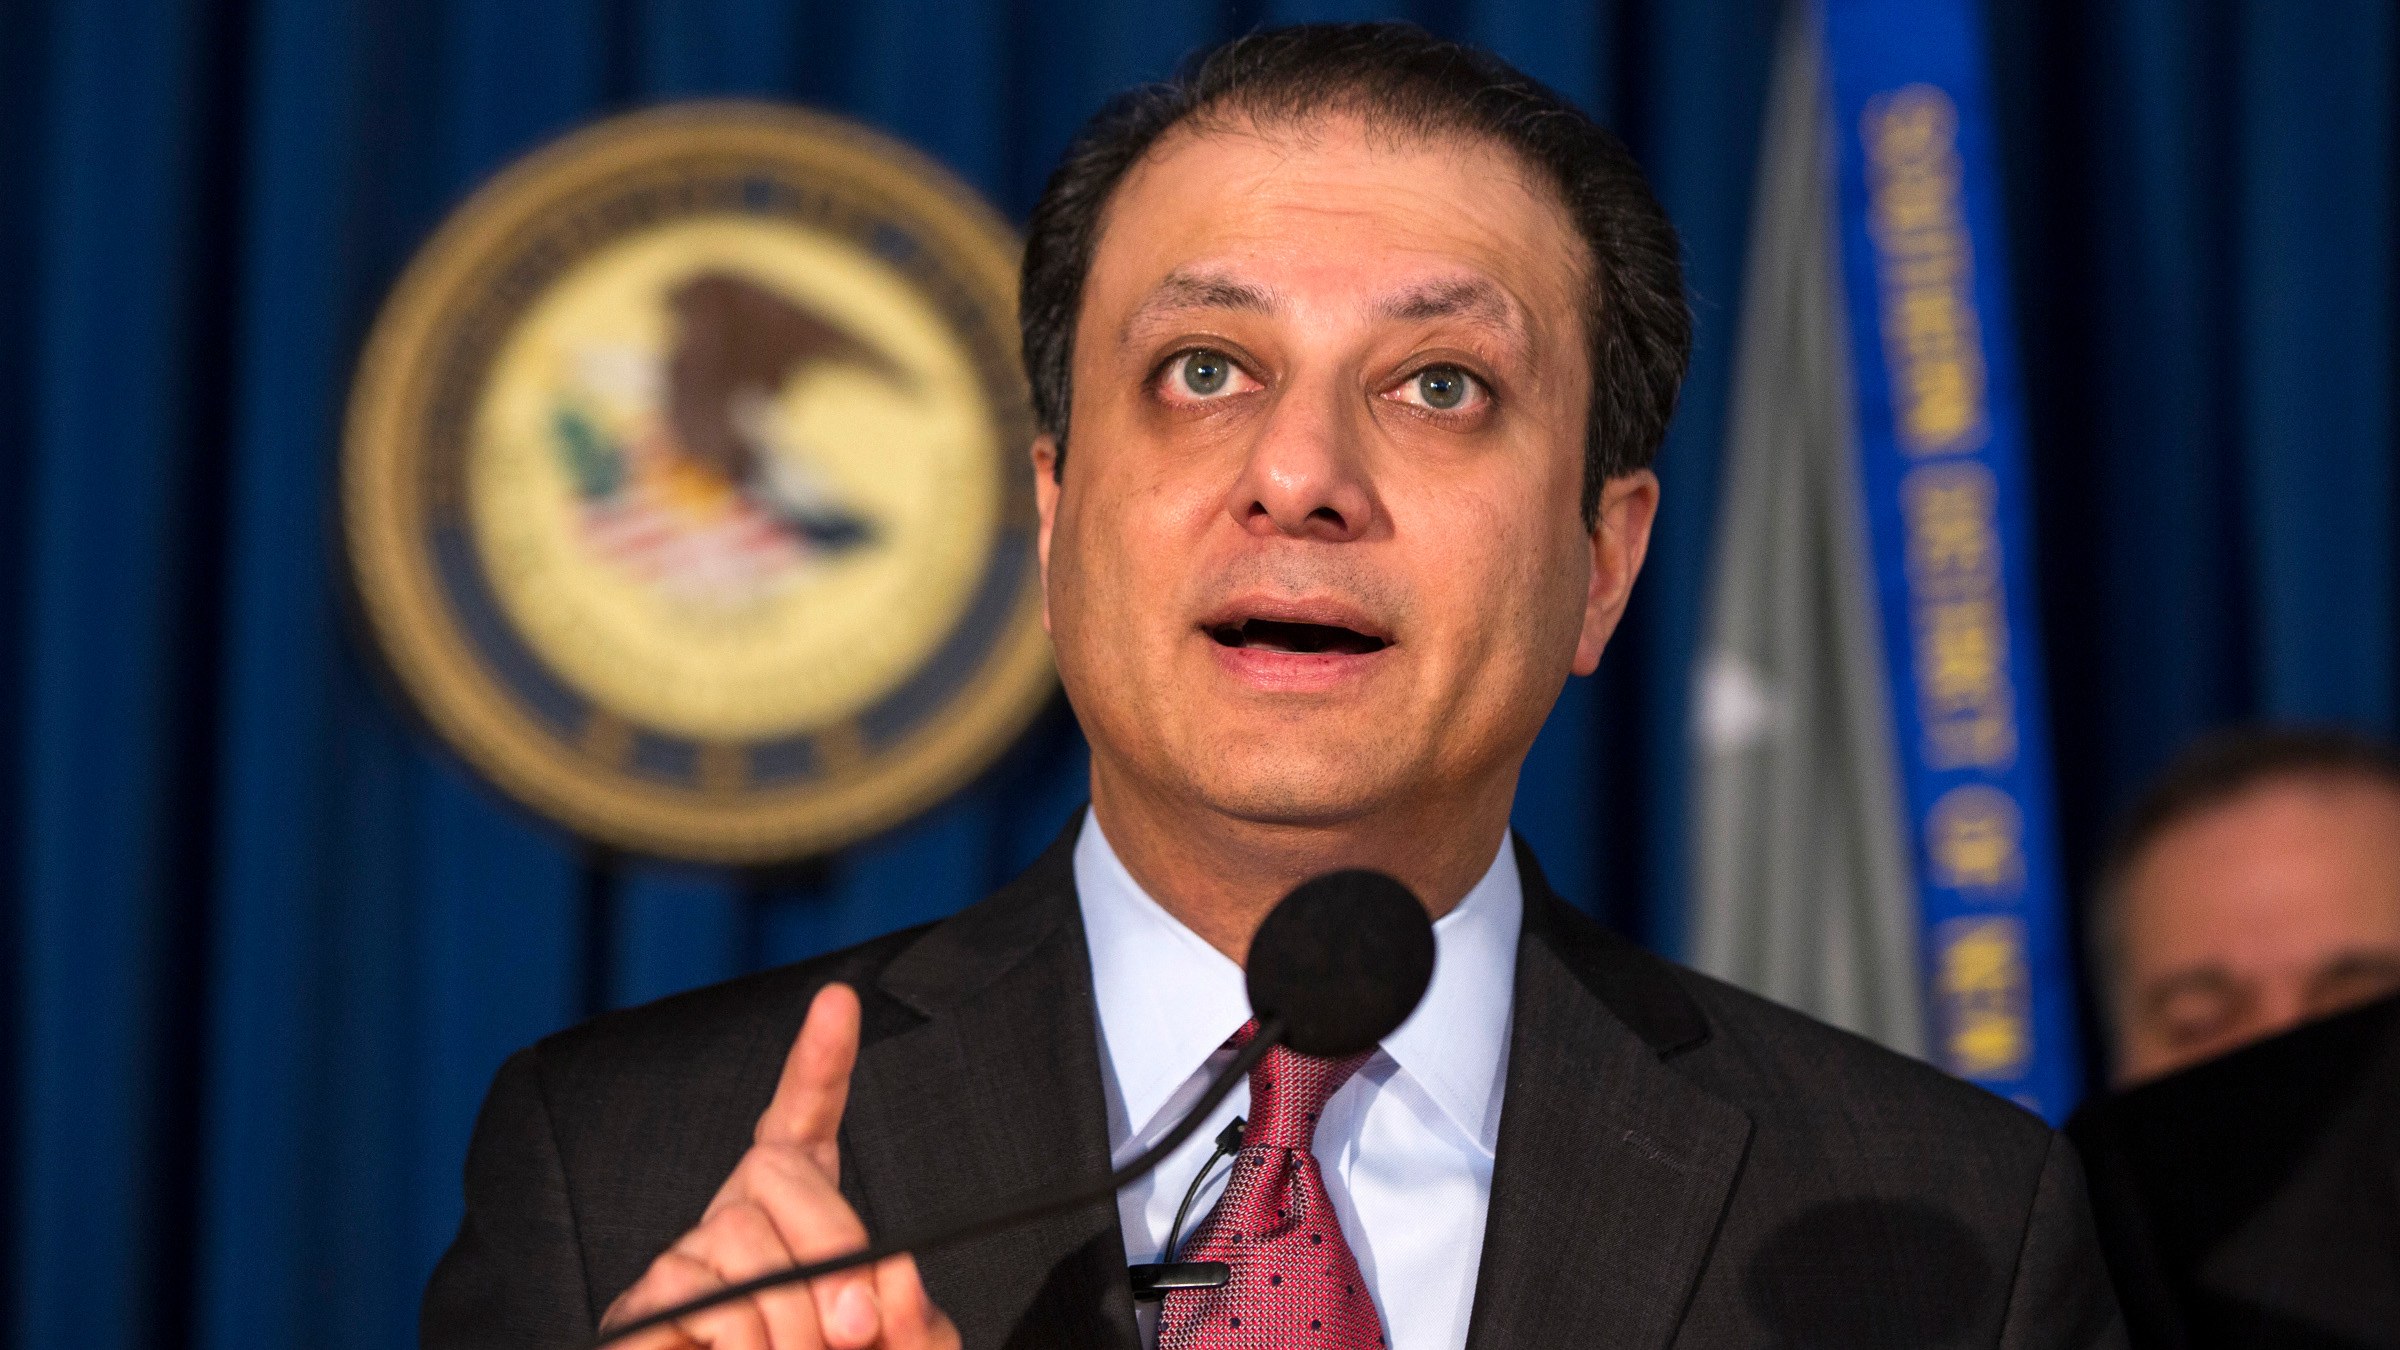 Preet Bharara, U.S. Attorney for the Southern District of New York discusses charges being brought against the debt settlement company Mission Settlement Agency, at a news conference in New York, May 7, 2013.